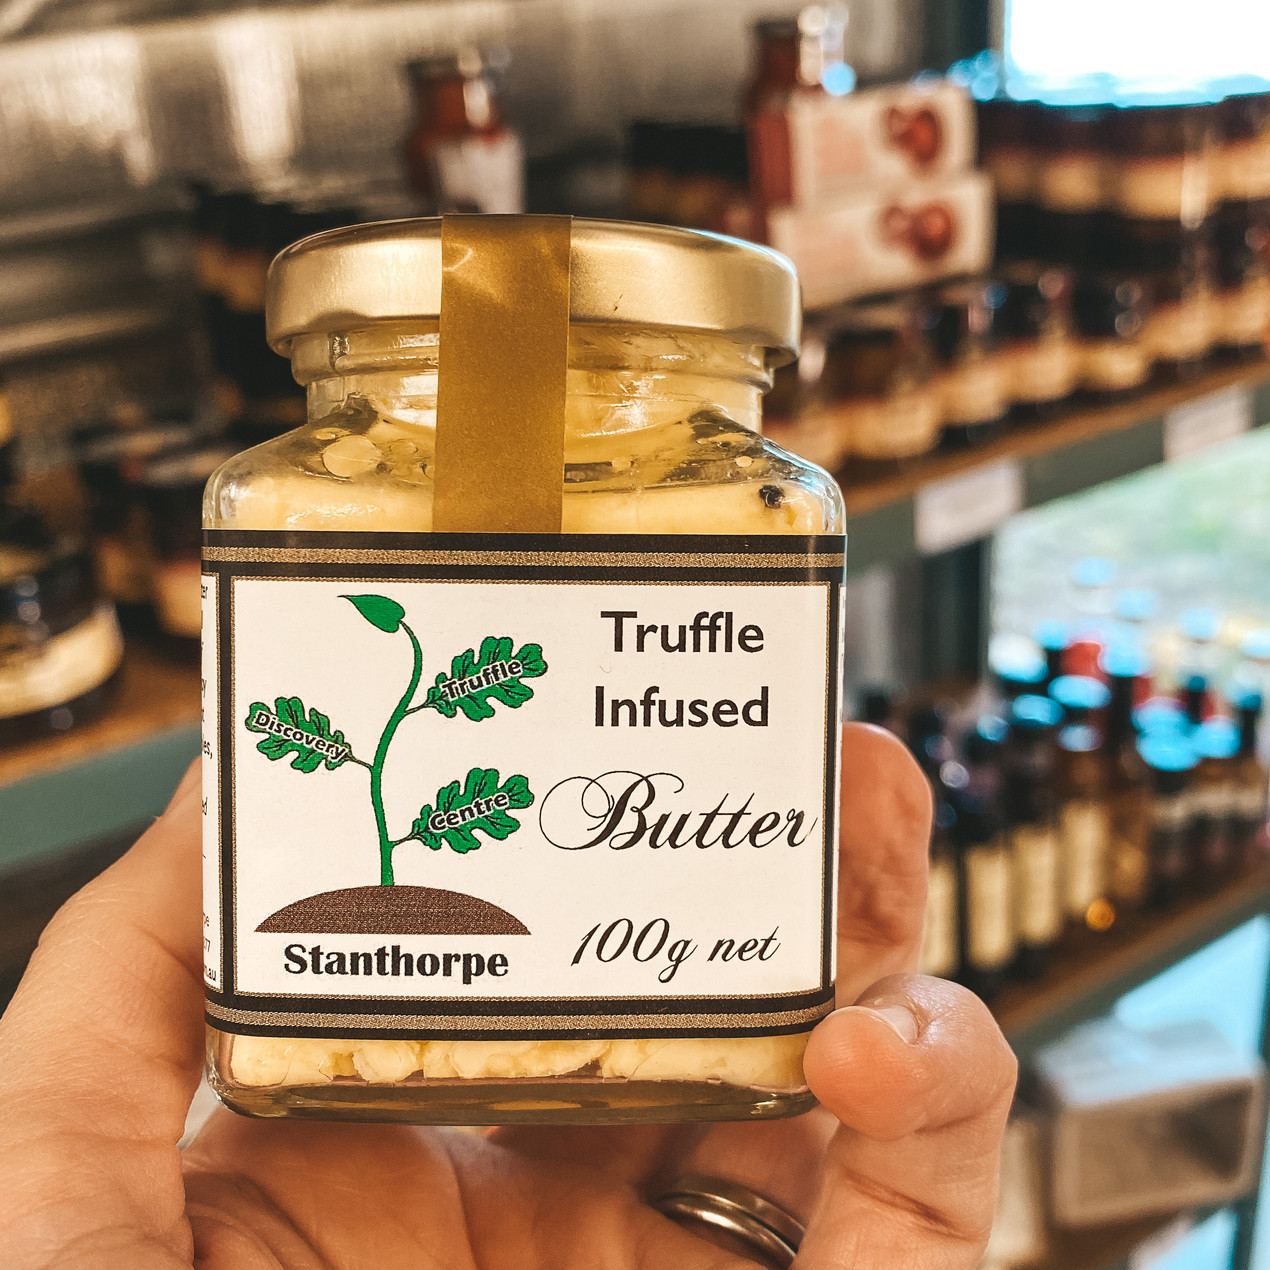 Stanthorpe truffle butter